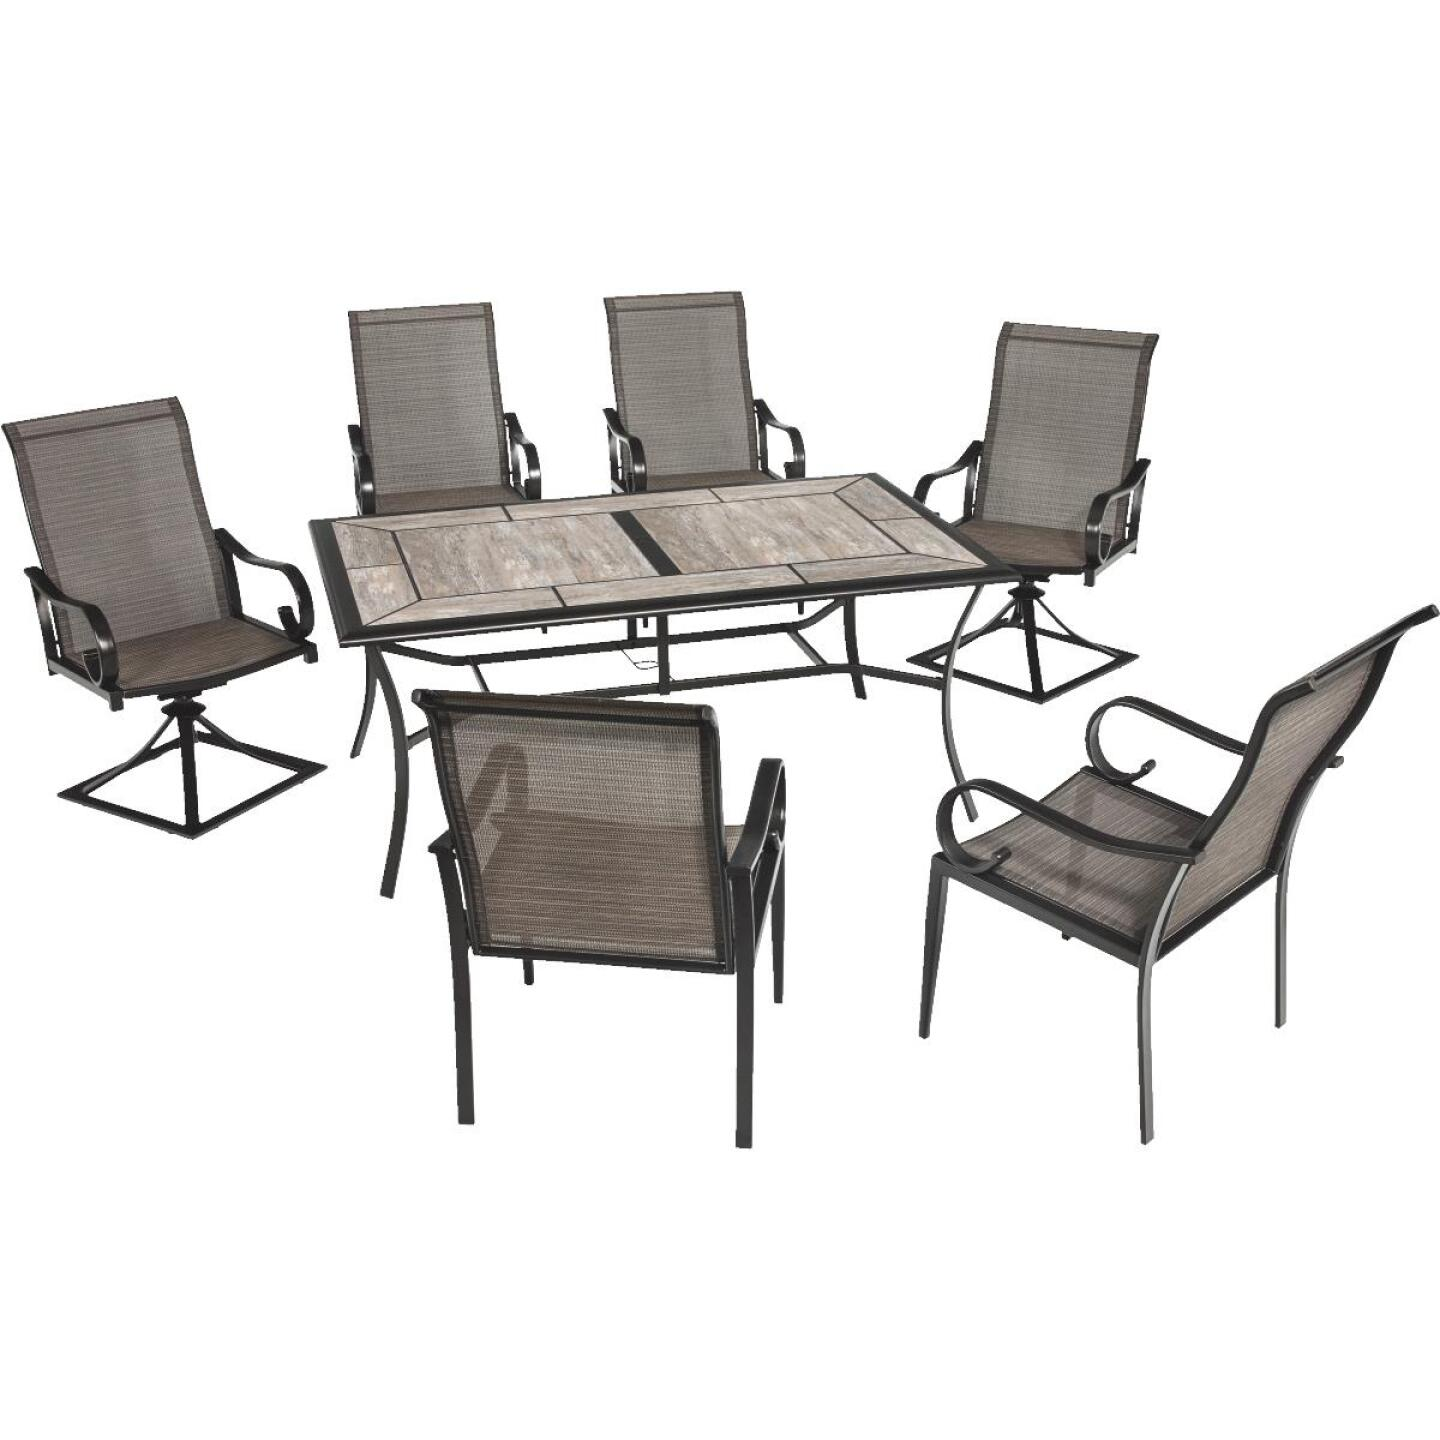 Outdoor Expressions Berkshire 7-Piece Dining Set Image 134